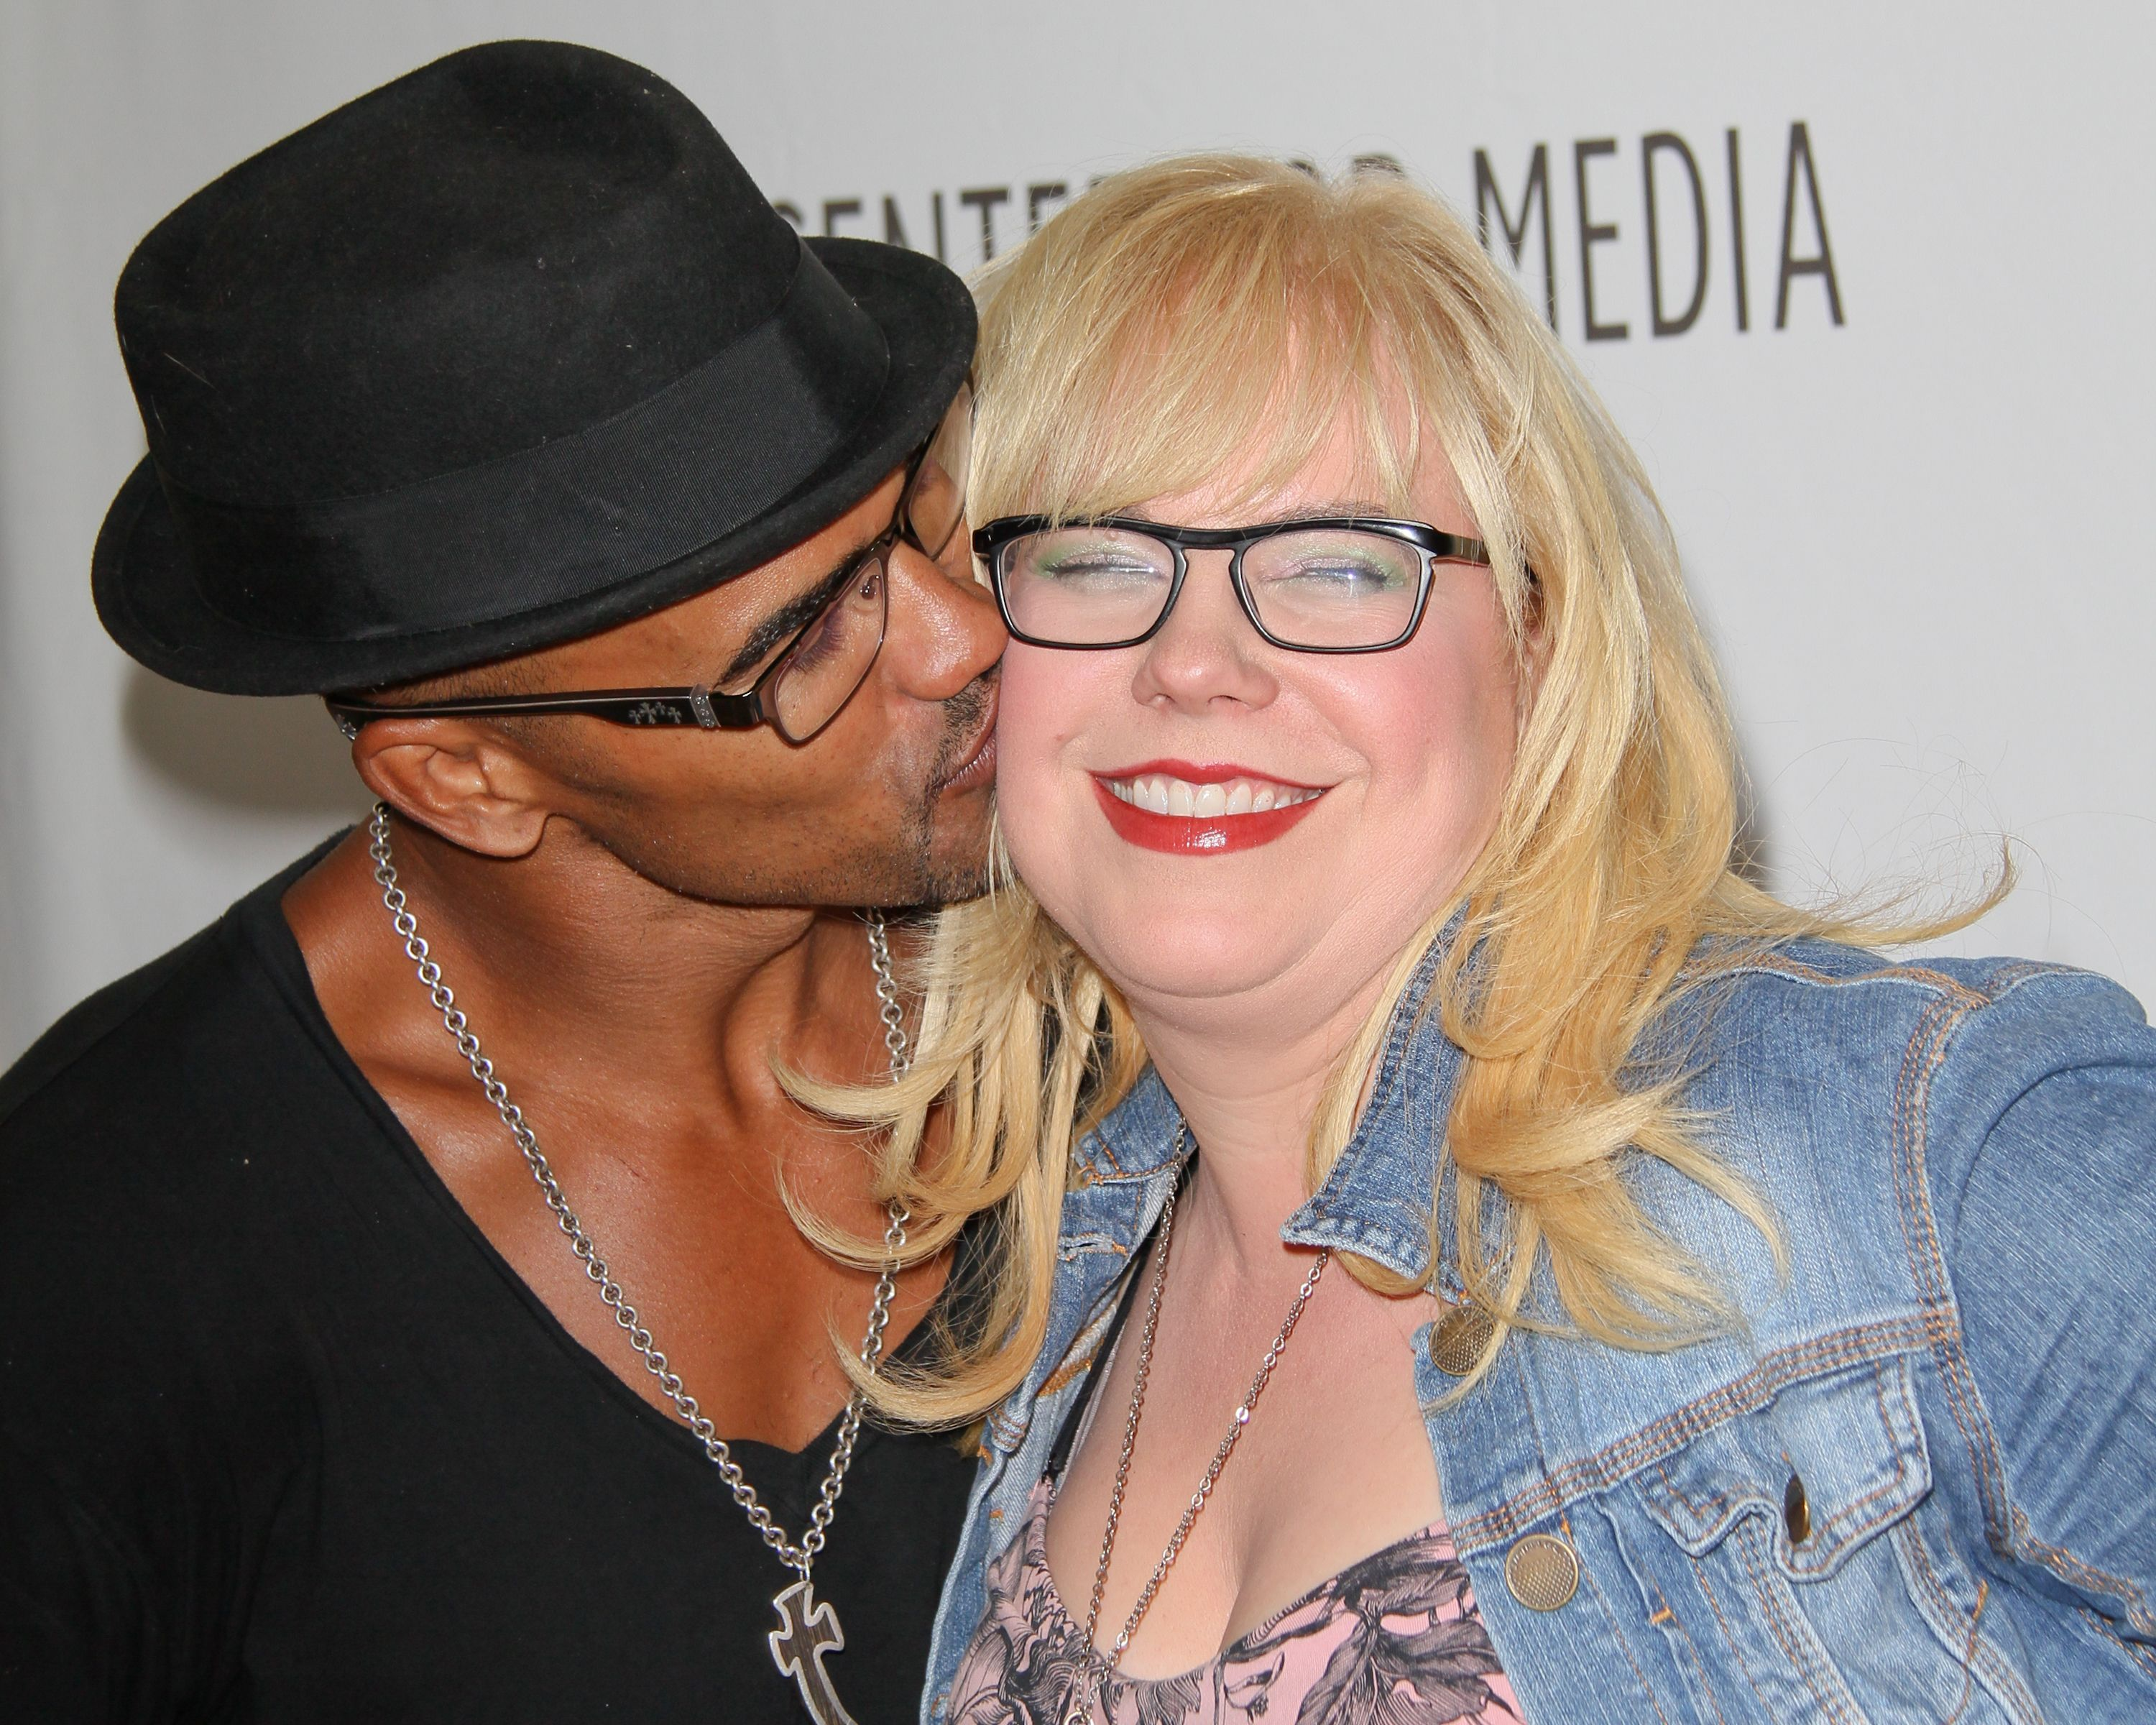 Shemar Moore and Kirsten Vangsness are great friends in real life / Getty Images